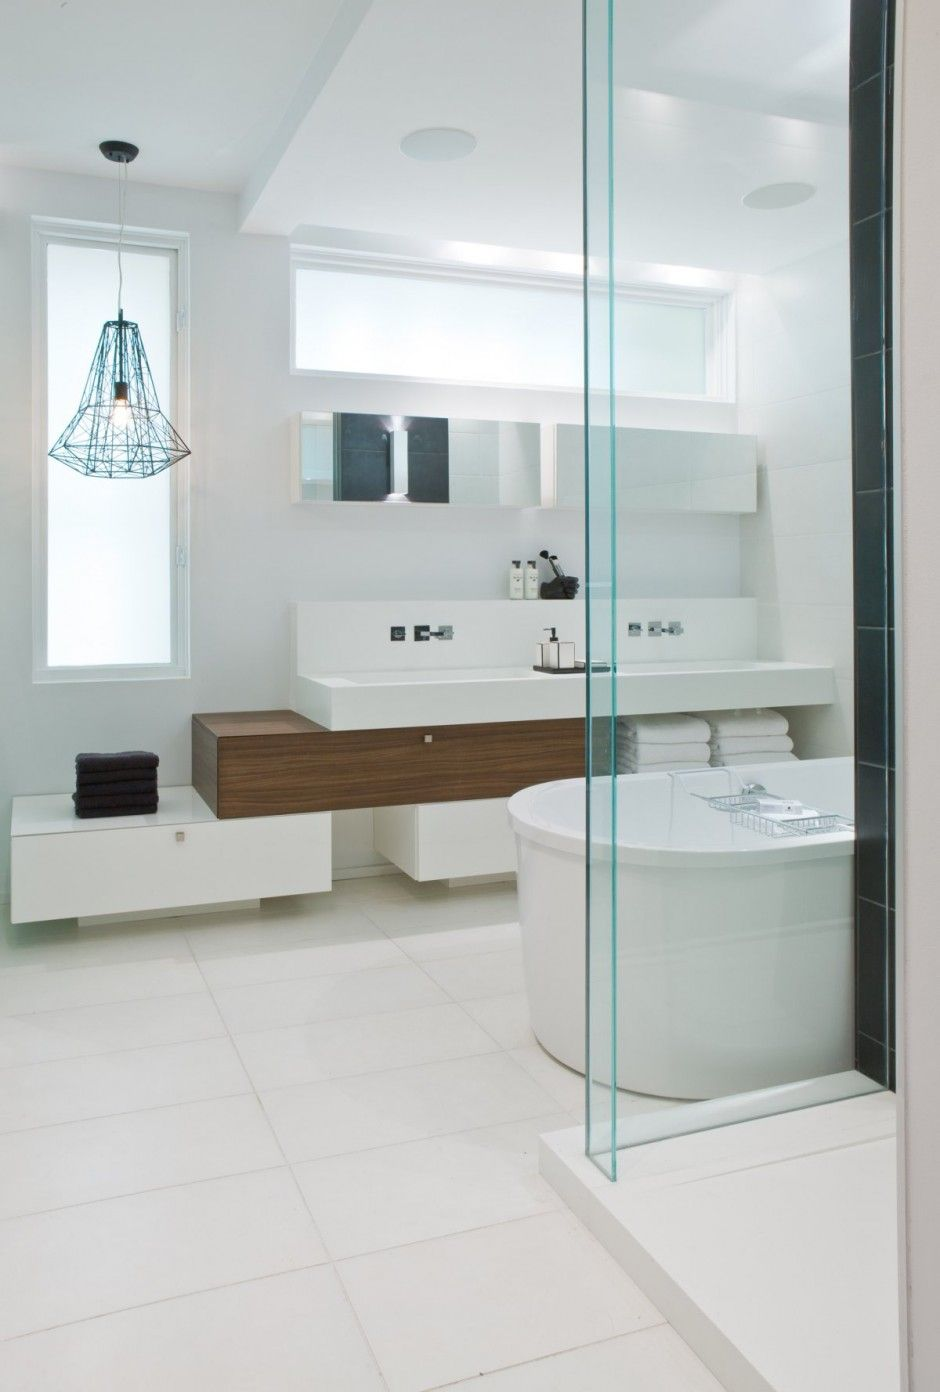 bathroom placement of the windows cabinets one big sink lighting rh pinterest co uk